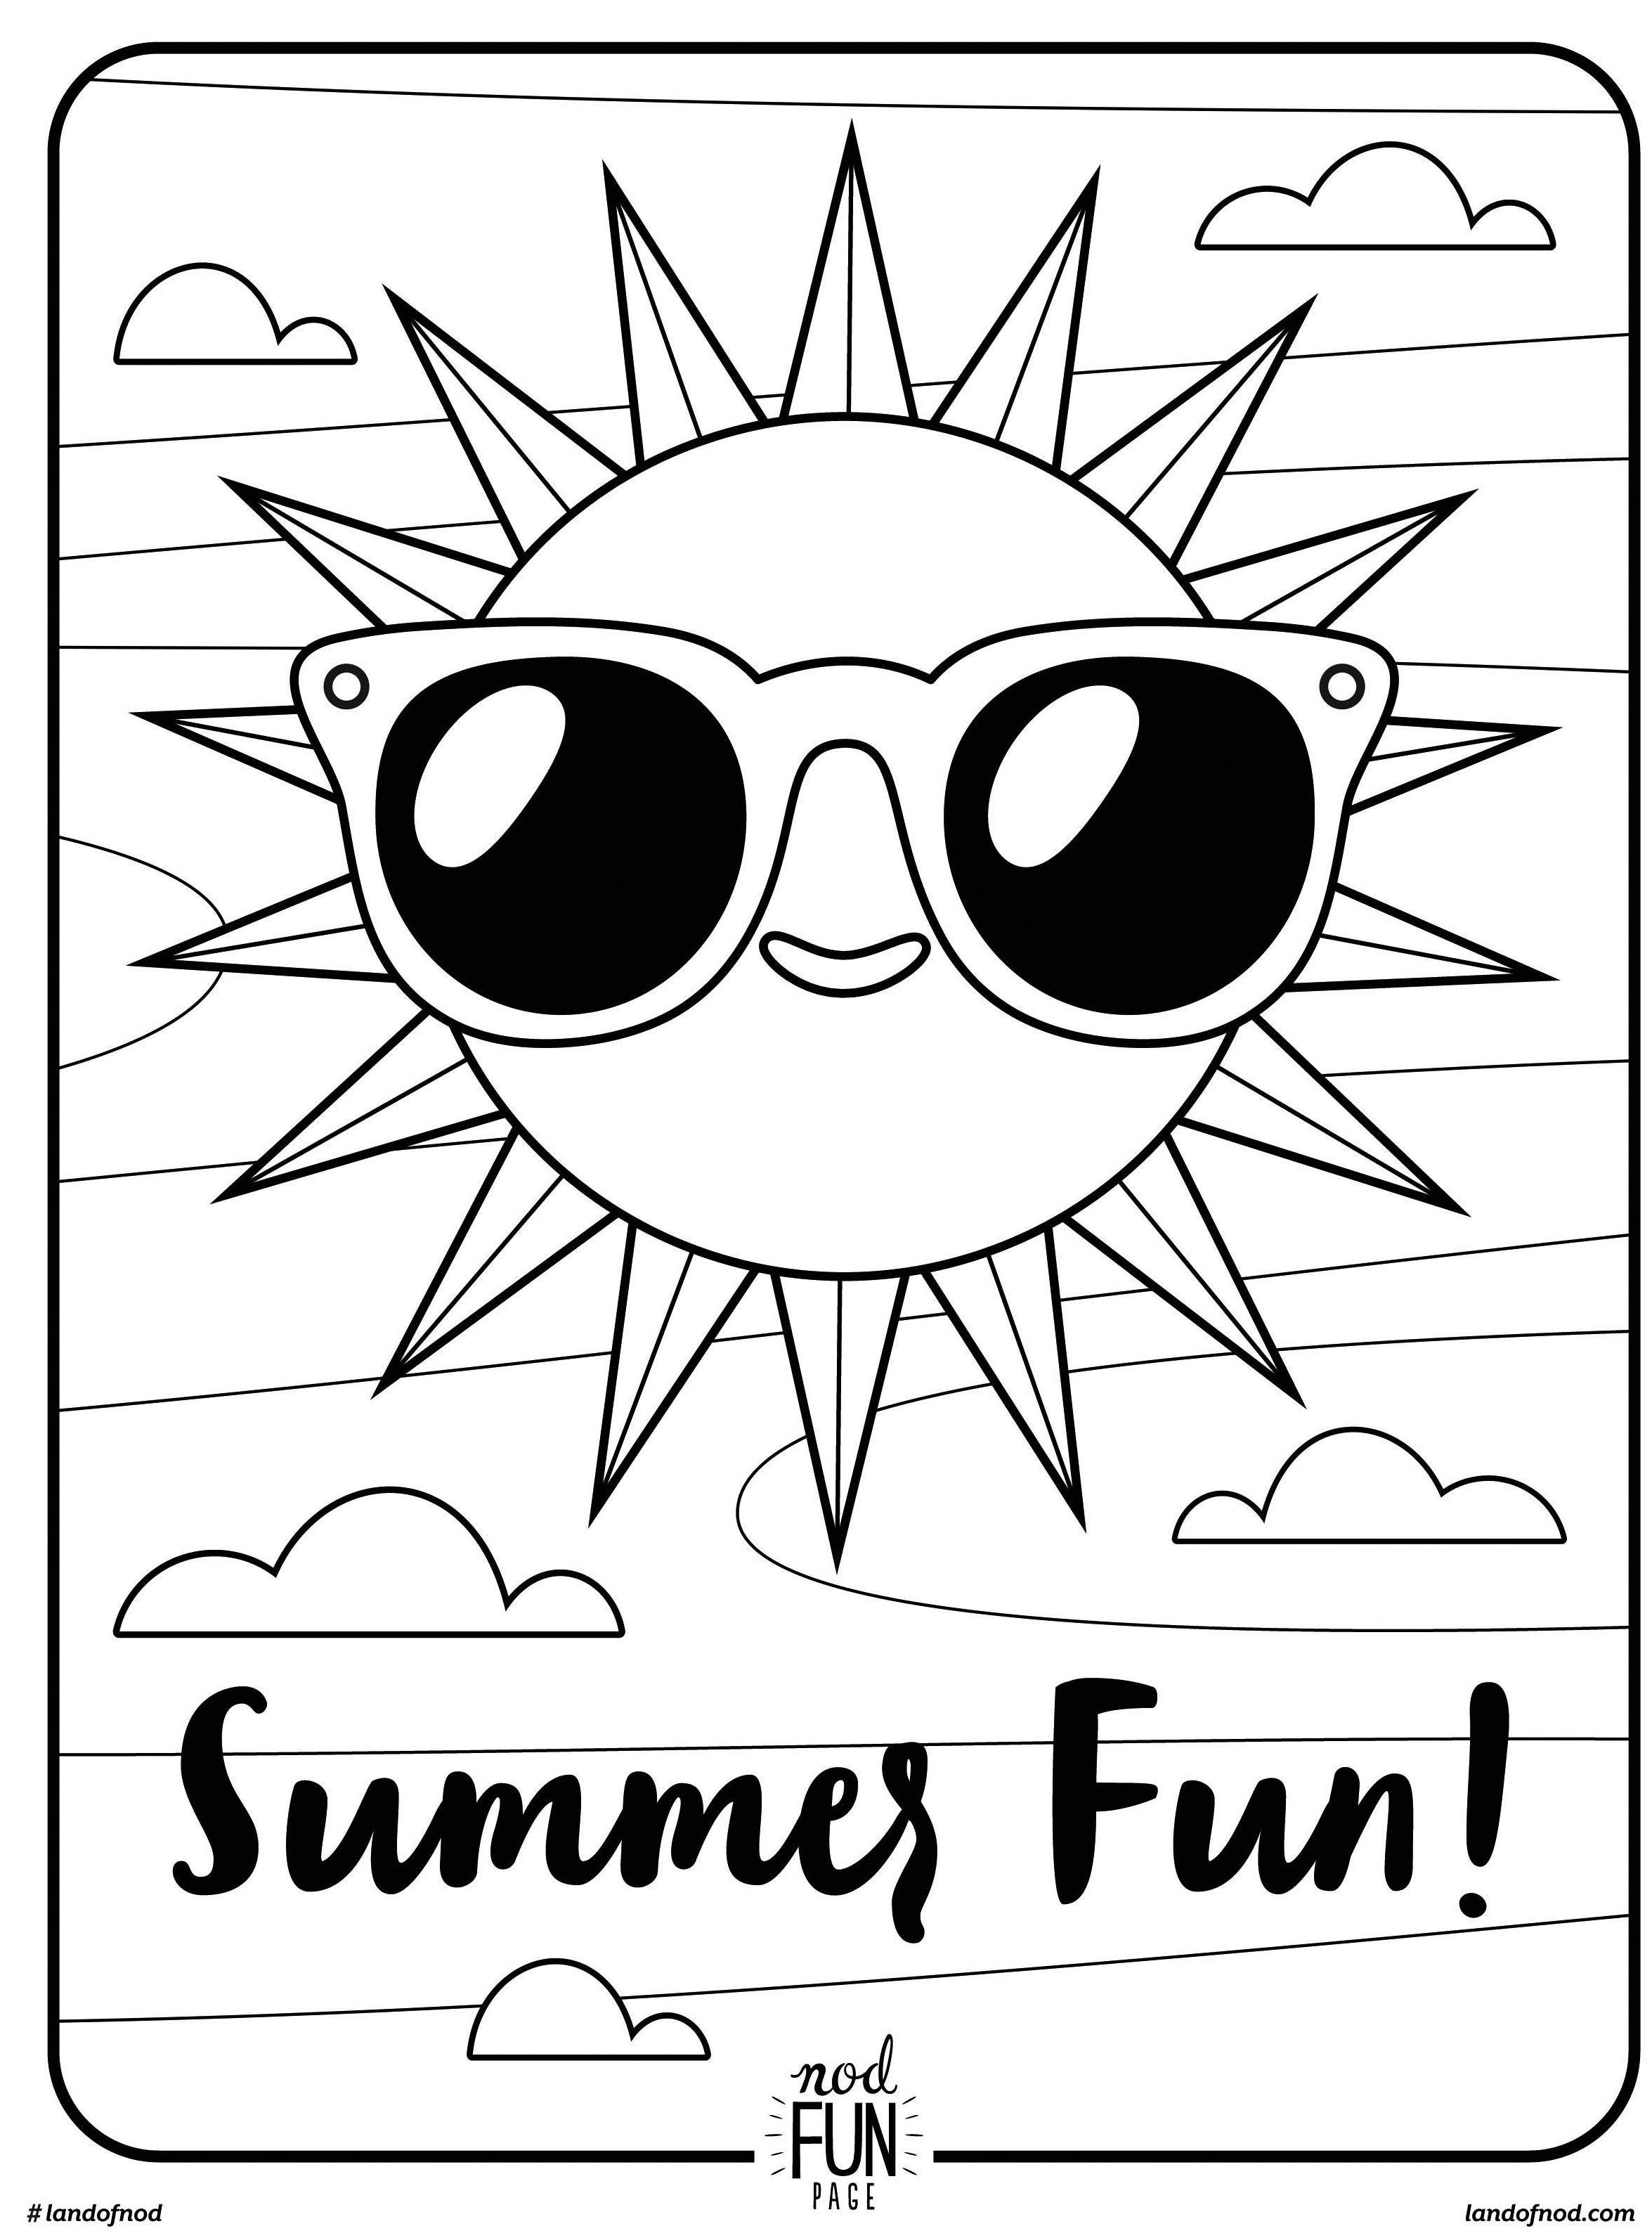 Free Printable Coloring Page: Summer Fun | Summer | Summer Coloring - Free Printable Summer Coloring Pages